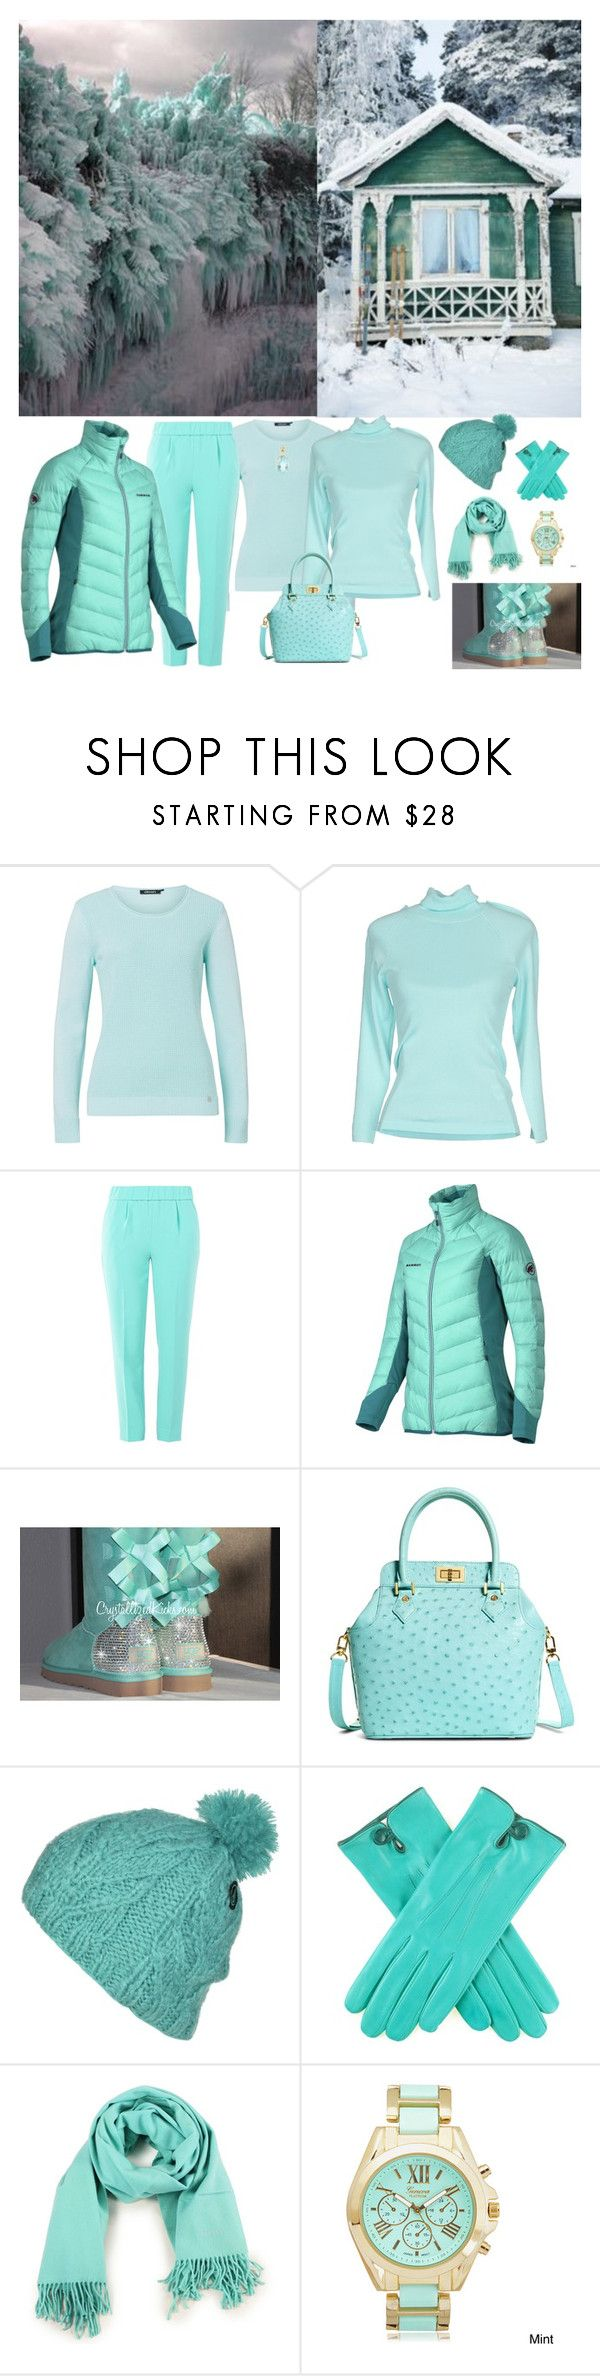 """""""Winter Mint"""" by horcal ❤ liked on Polyvore featuring Olsen, UNIQUENESS, Boutique Moschino, Mammut, Brooks Brothers, Volcom, Hermès and Geneva"""